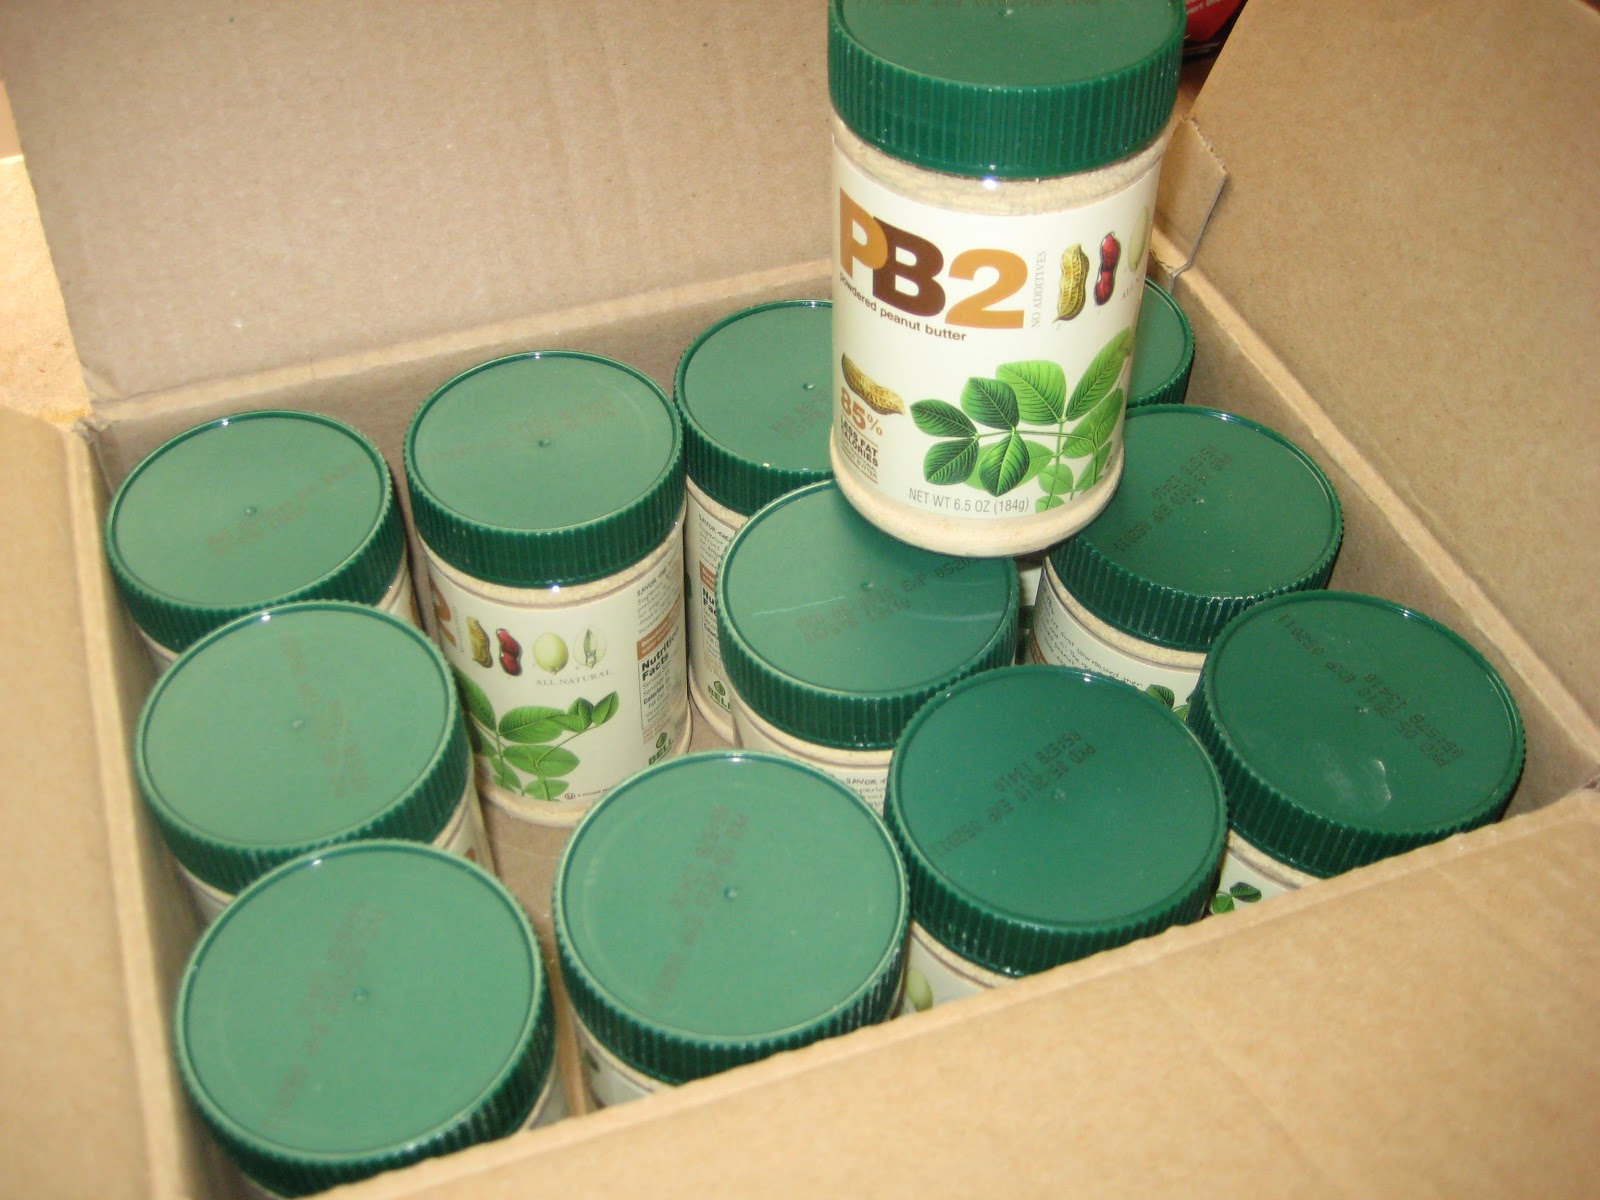 Powdered peanut butter (PB2) shipment